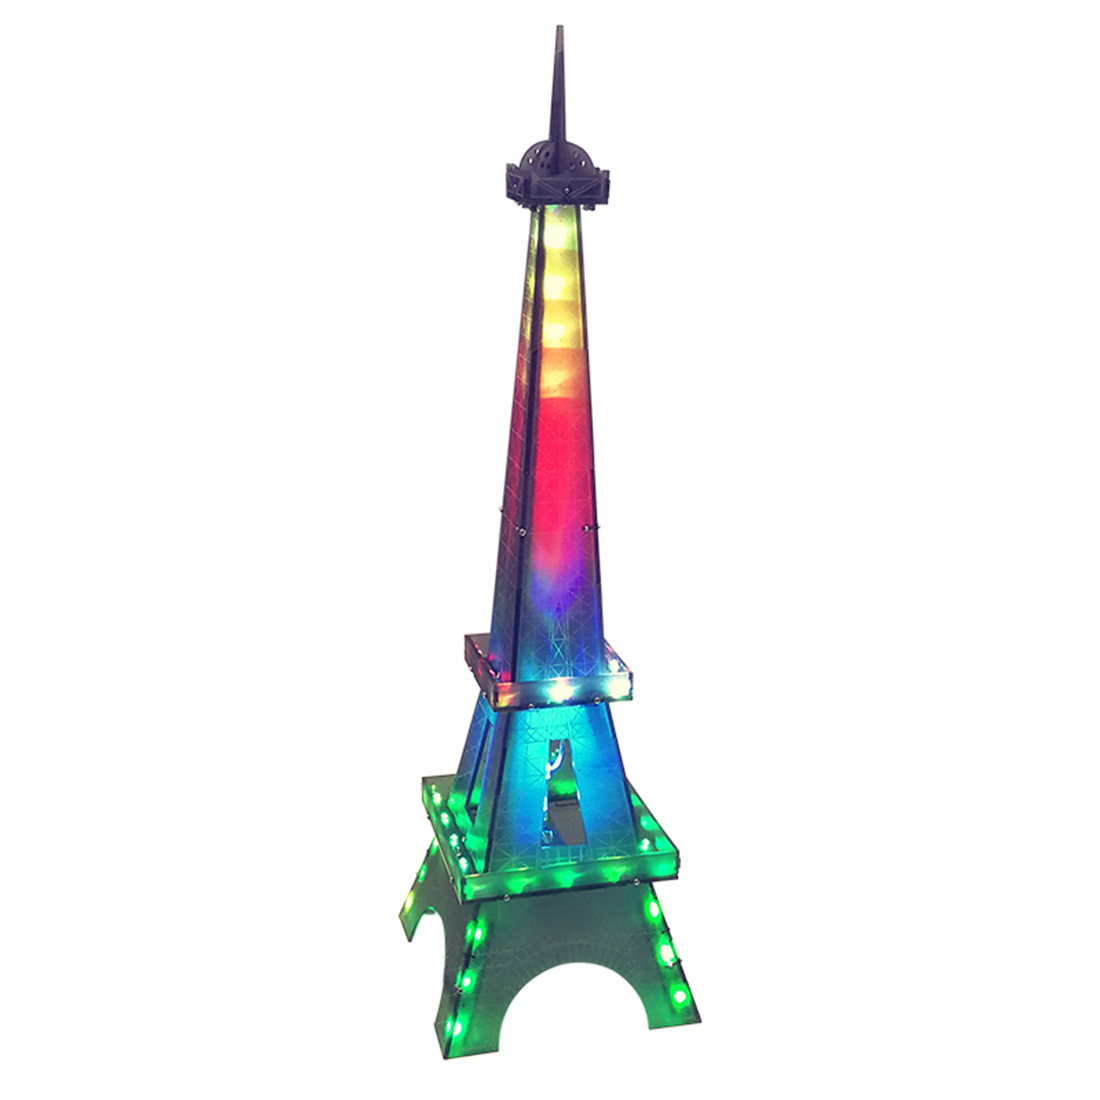 DIY LED Display Lamp DIY Welding Light Kits DIY Lamp Brain-Training Toy For Children Education Toys Birthday Gift - Eiffel Tower